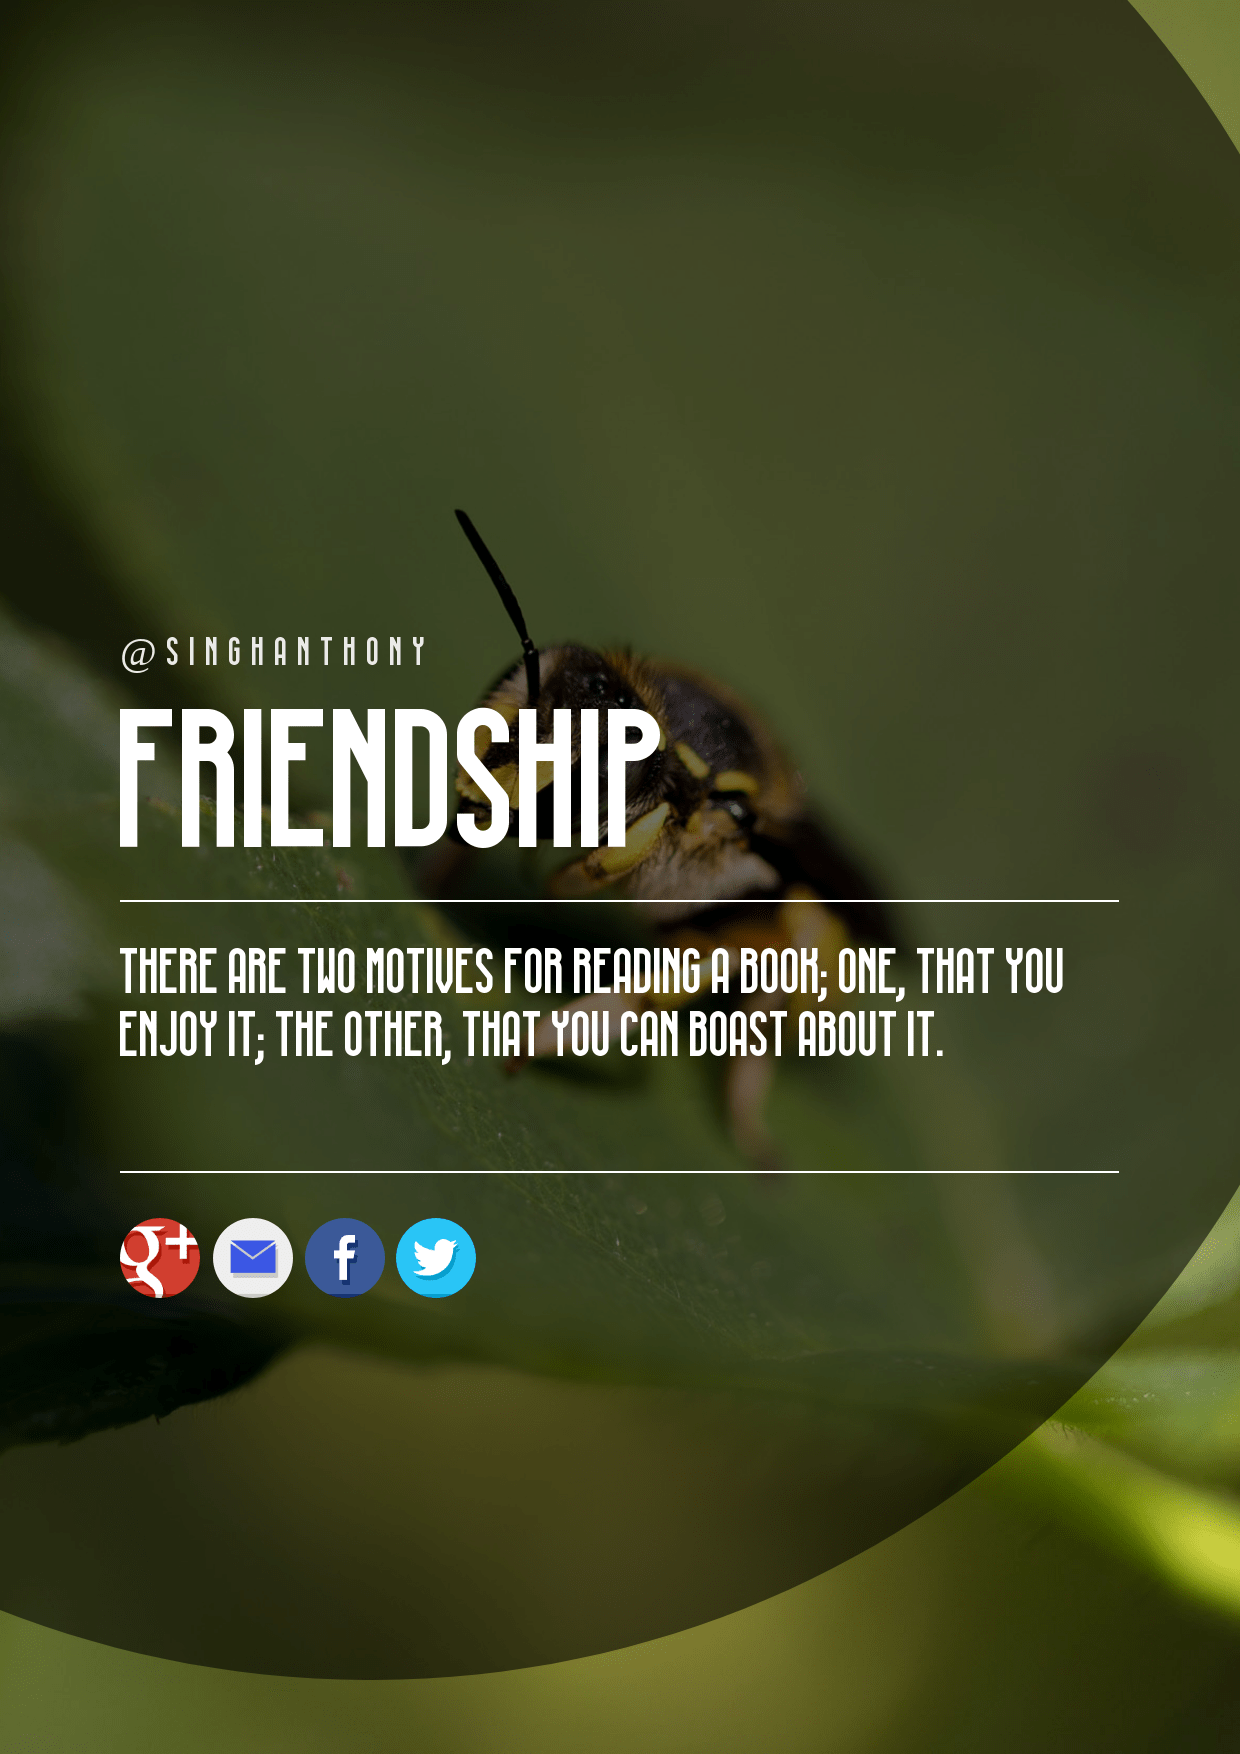 Insect,                Ecosystem,                Text,                Invertebrate,                Organism,                Macro,                Photography,                Membrane,                Winged,                Pest,                Font,                Pollinator,                Wing,                 Free Image